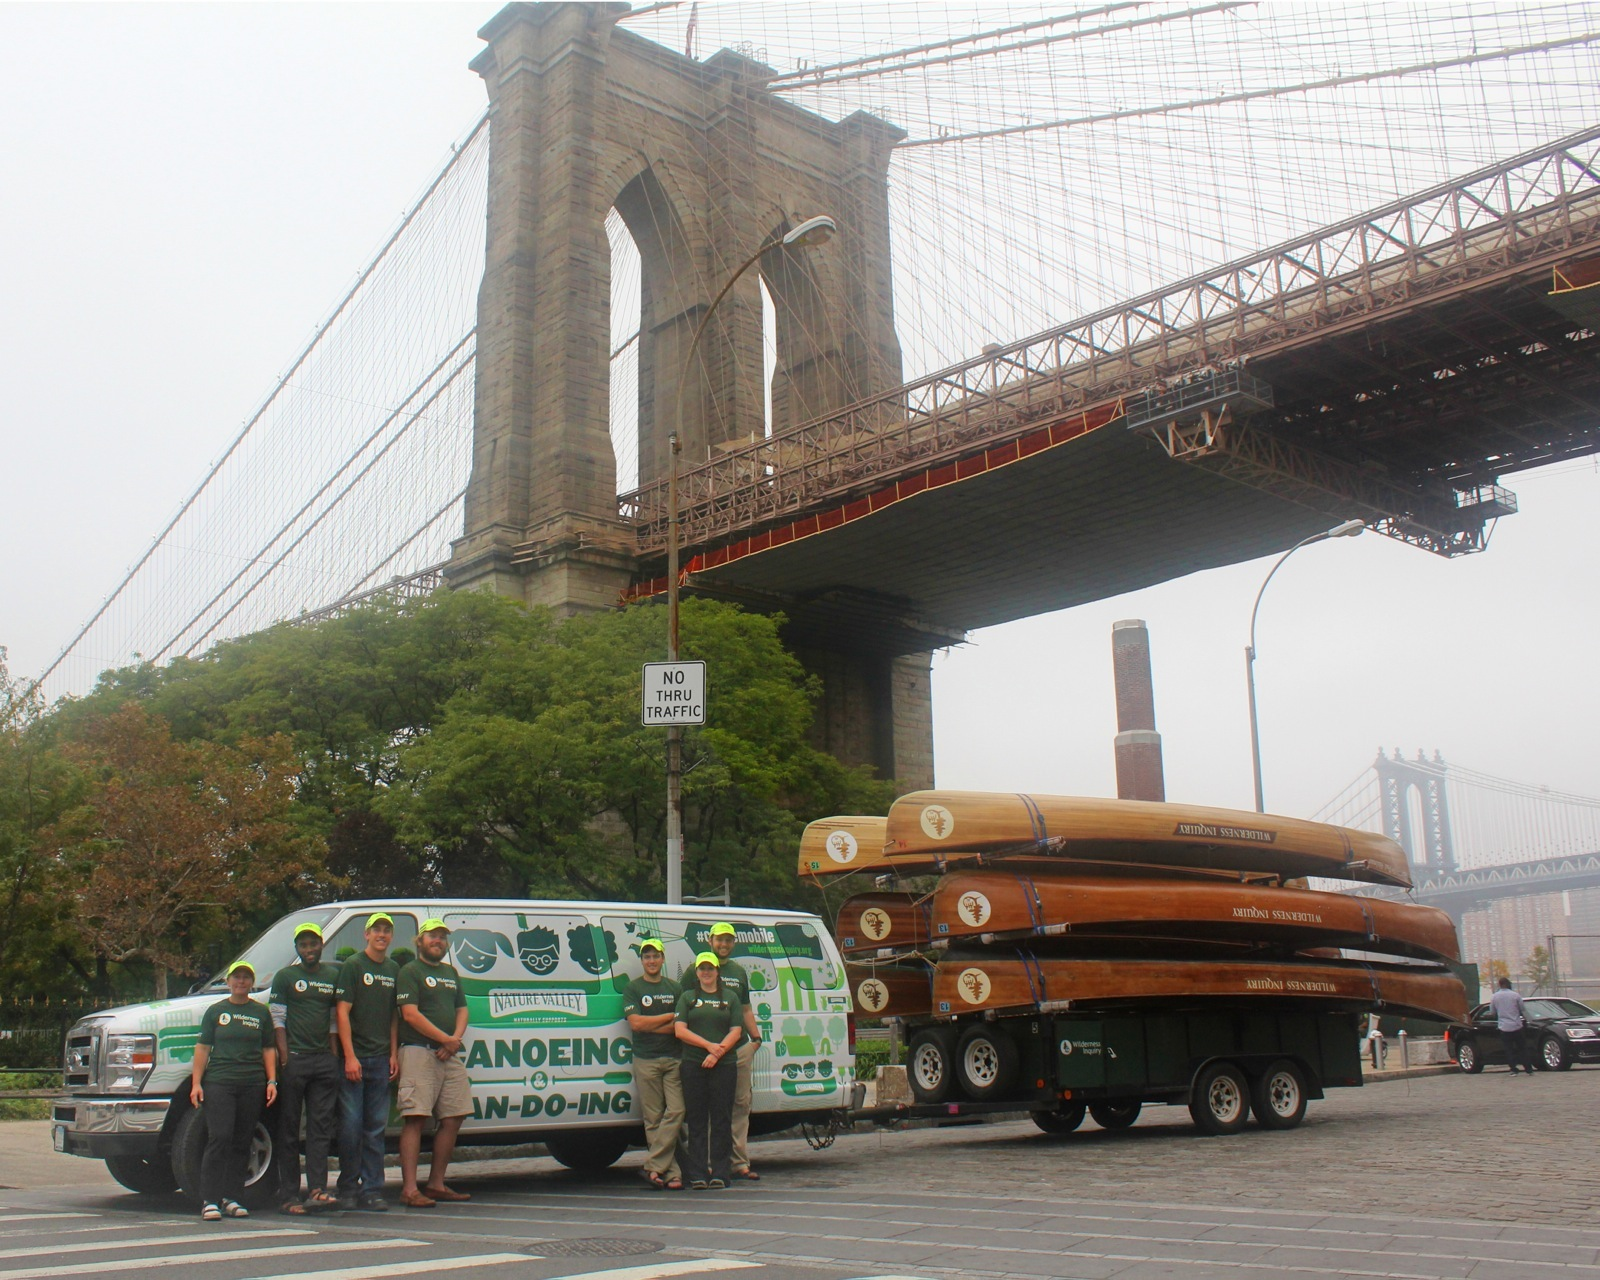 group photo of crew members in front of canoemobile van and canoes by Octavio Molina